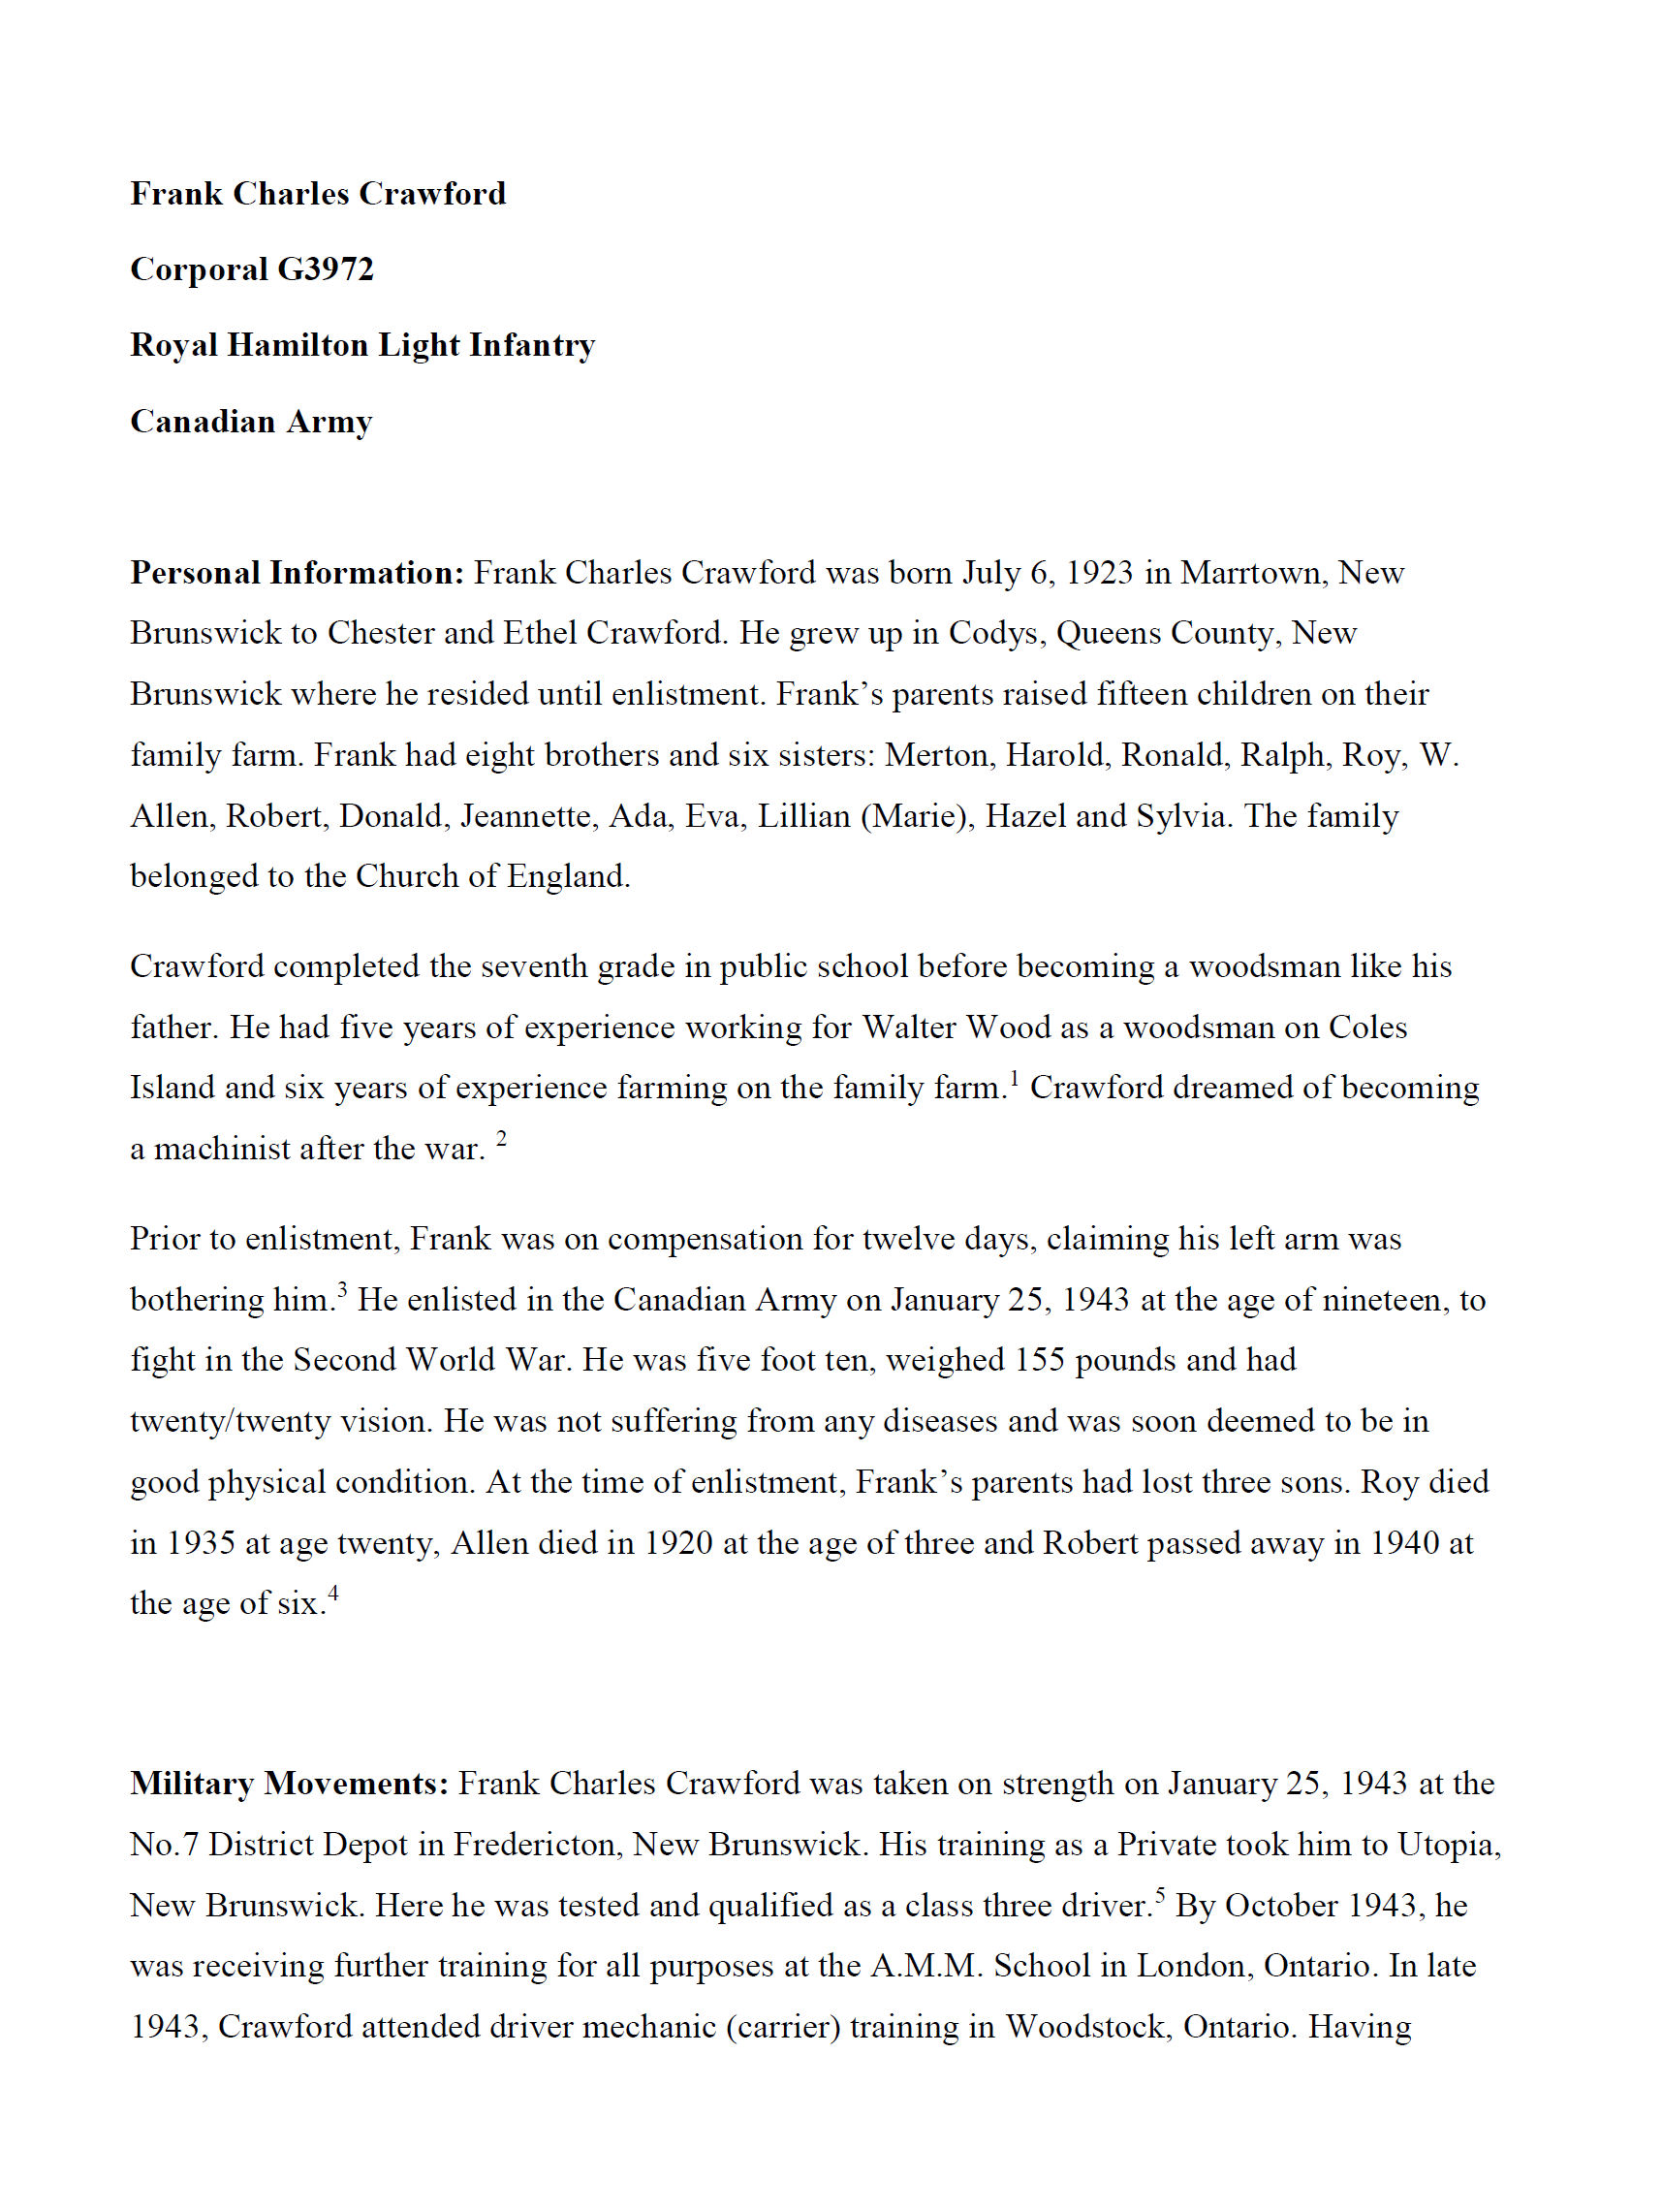 Essay (Page 1)– In 2014, the grade 11 Modern History students at Belleisle Regional High School continued to write biographies for soldiers from the local area who died during the First and Second World Wars.